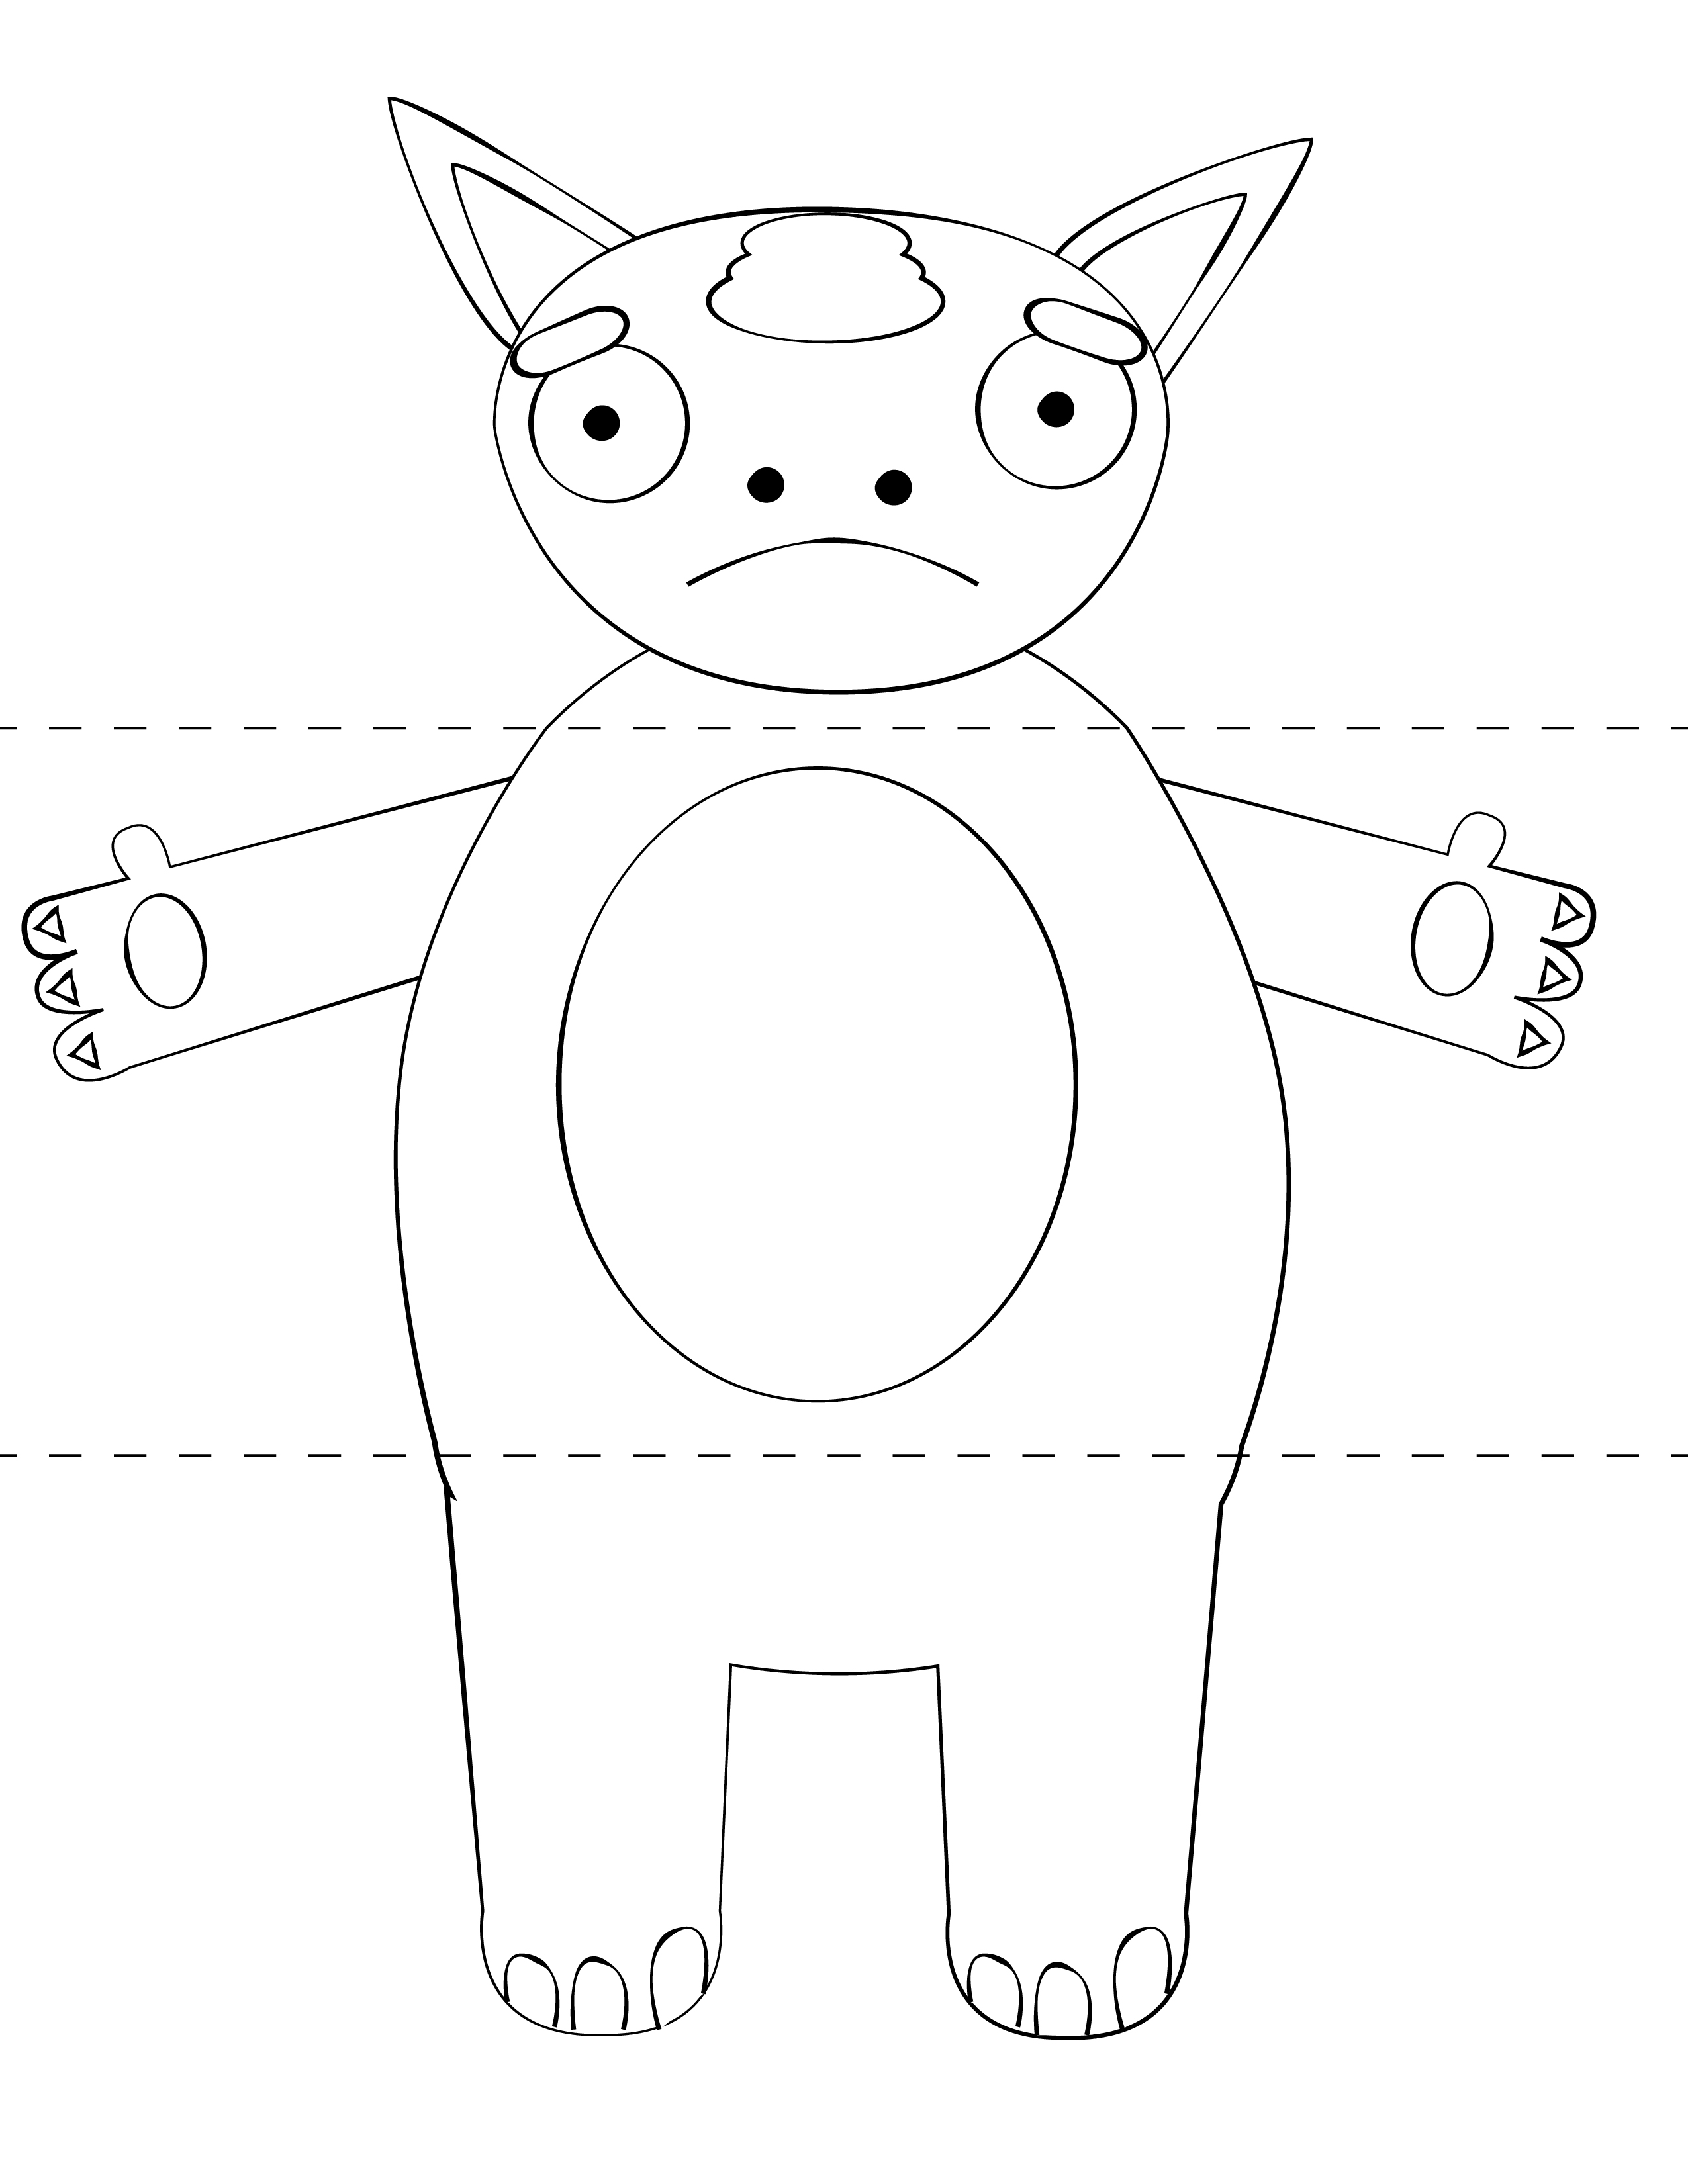 Print Cut Paste Craft Blog Archive Free Kids Craft – Monster Template